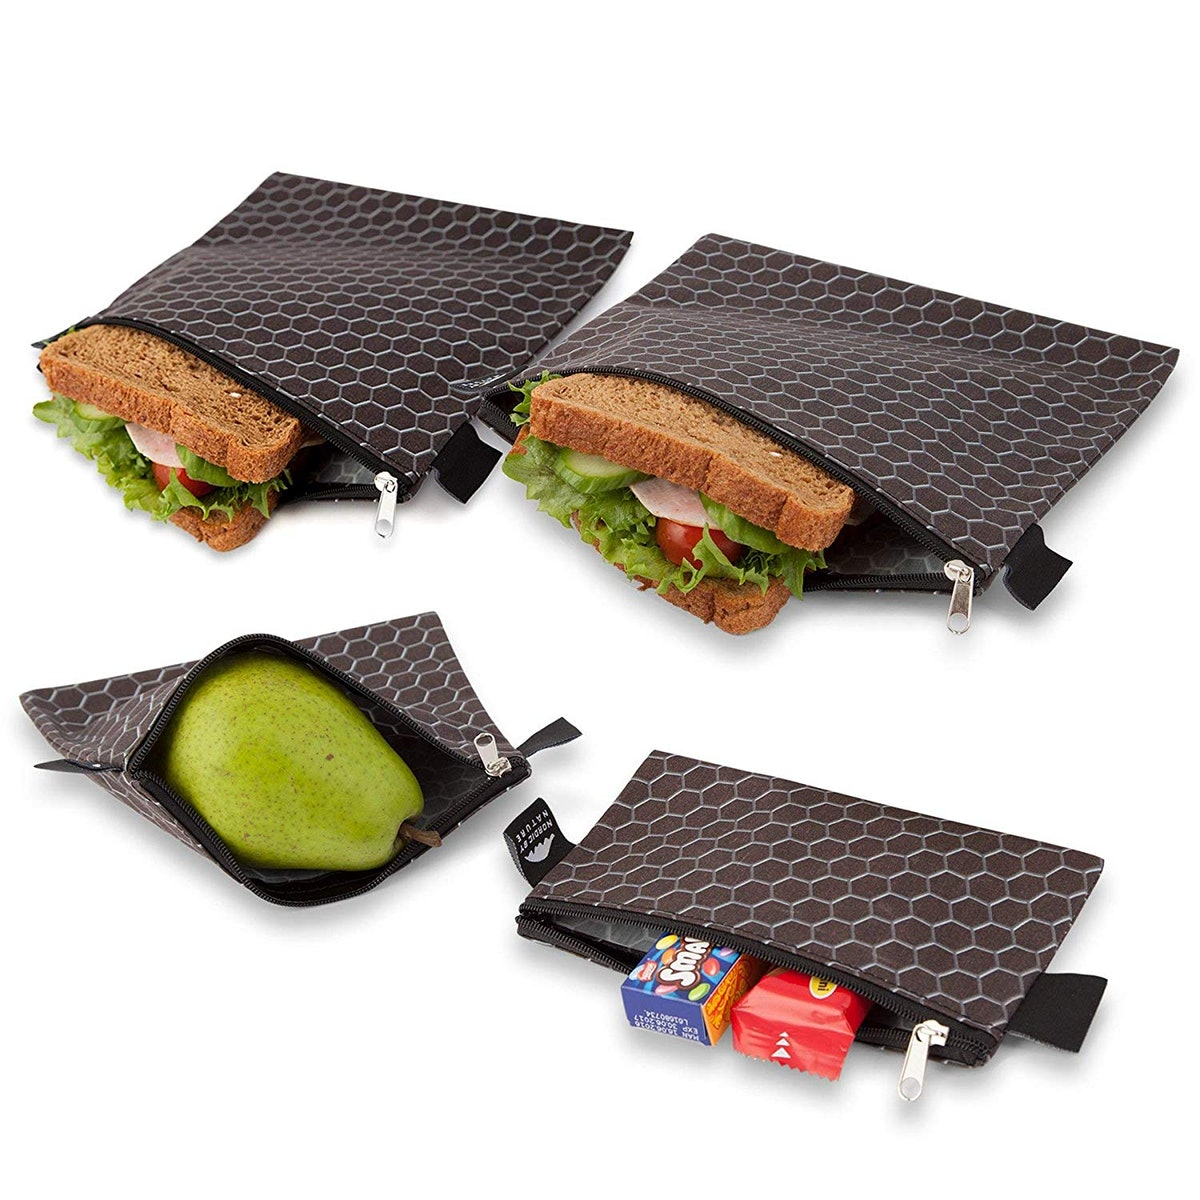 Nordic By Nature Reusable Sandwich Bags (4-Pack)